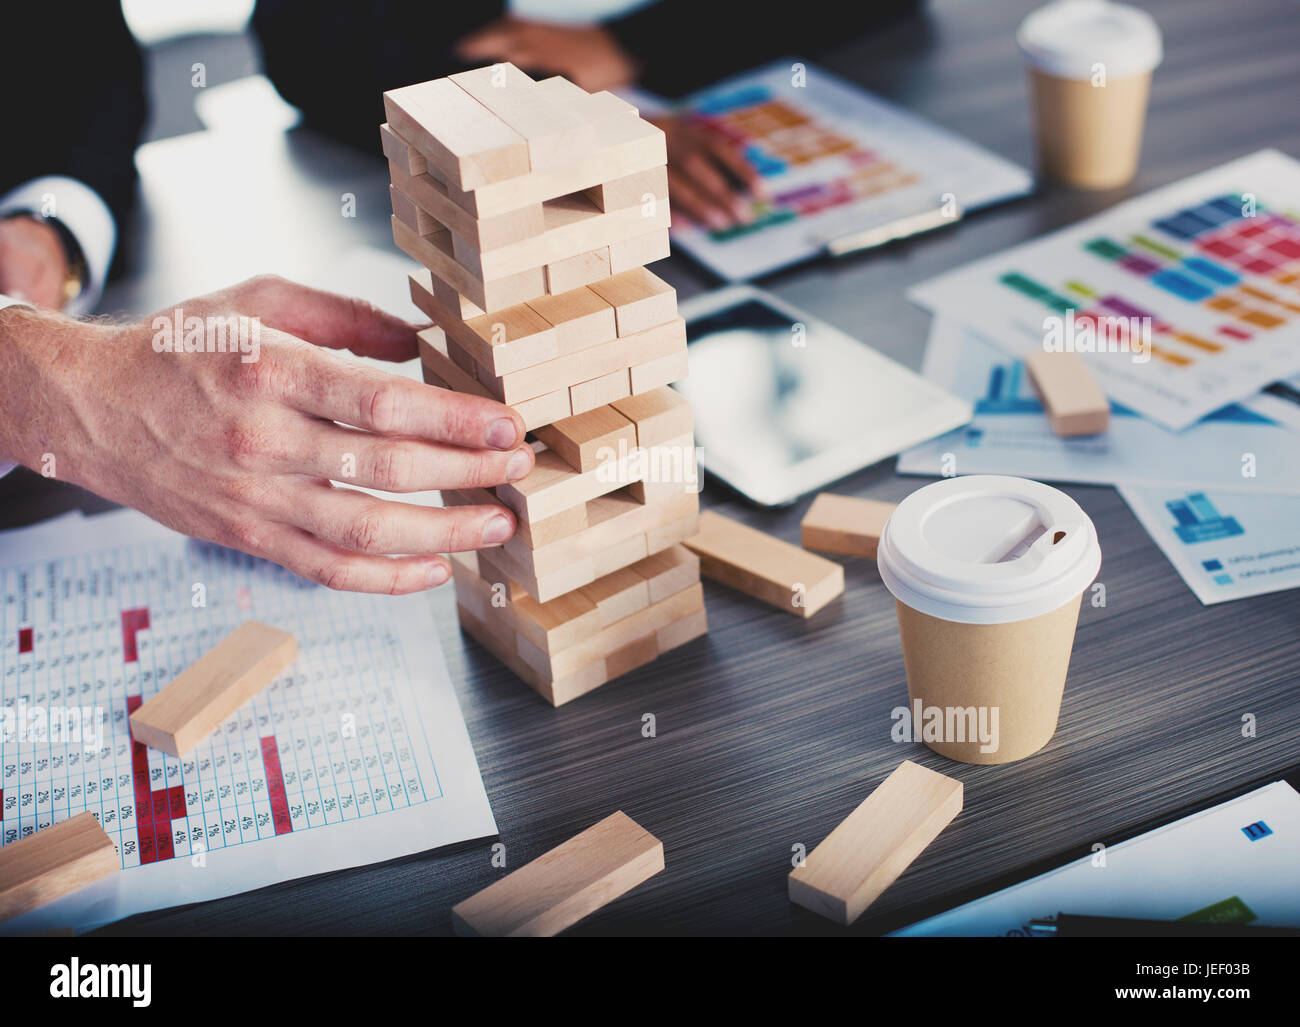 Teamwork of partners. Concept of integration and startup with a small construction of wooden toy - Stock Image